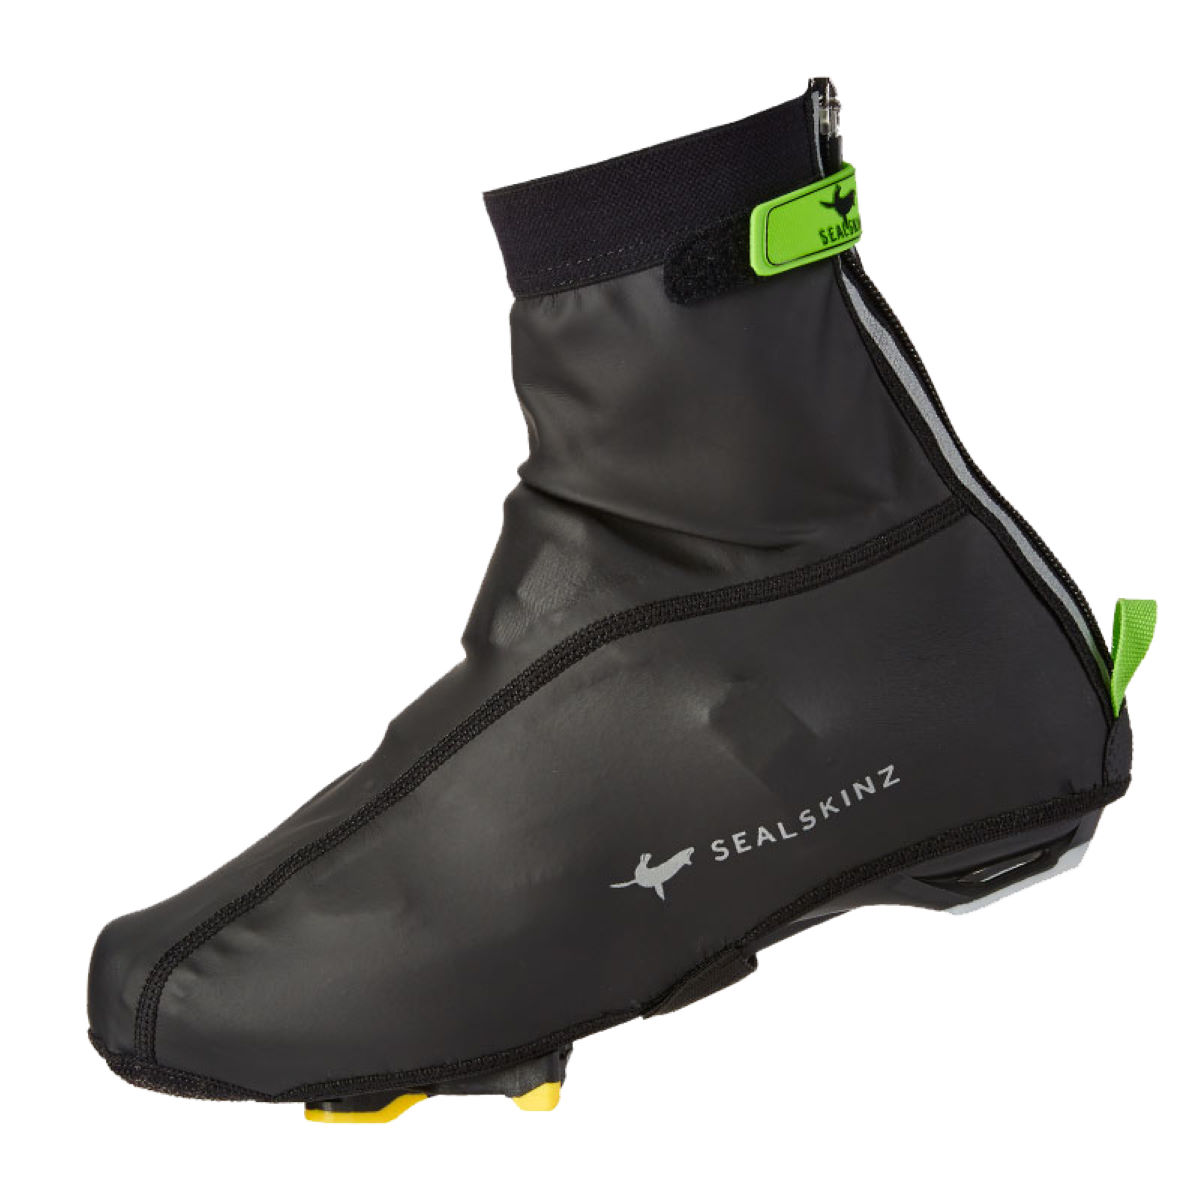 Cubrezapatillas SealSkinz Lightweight - Cubrezapatillas